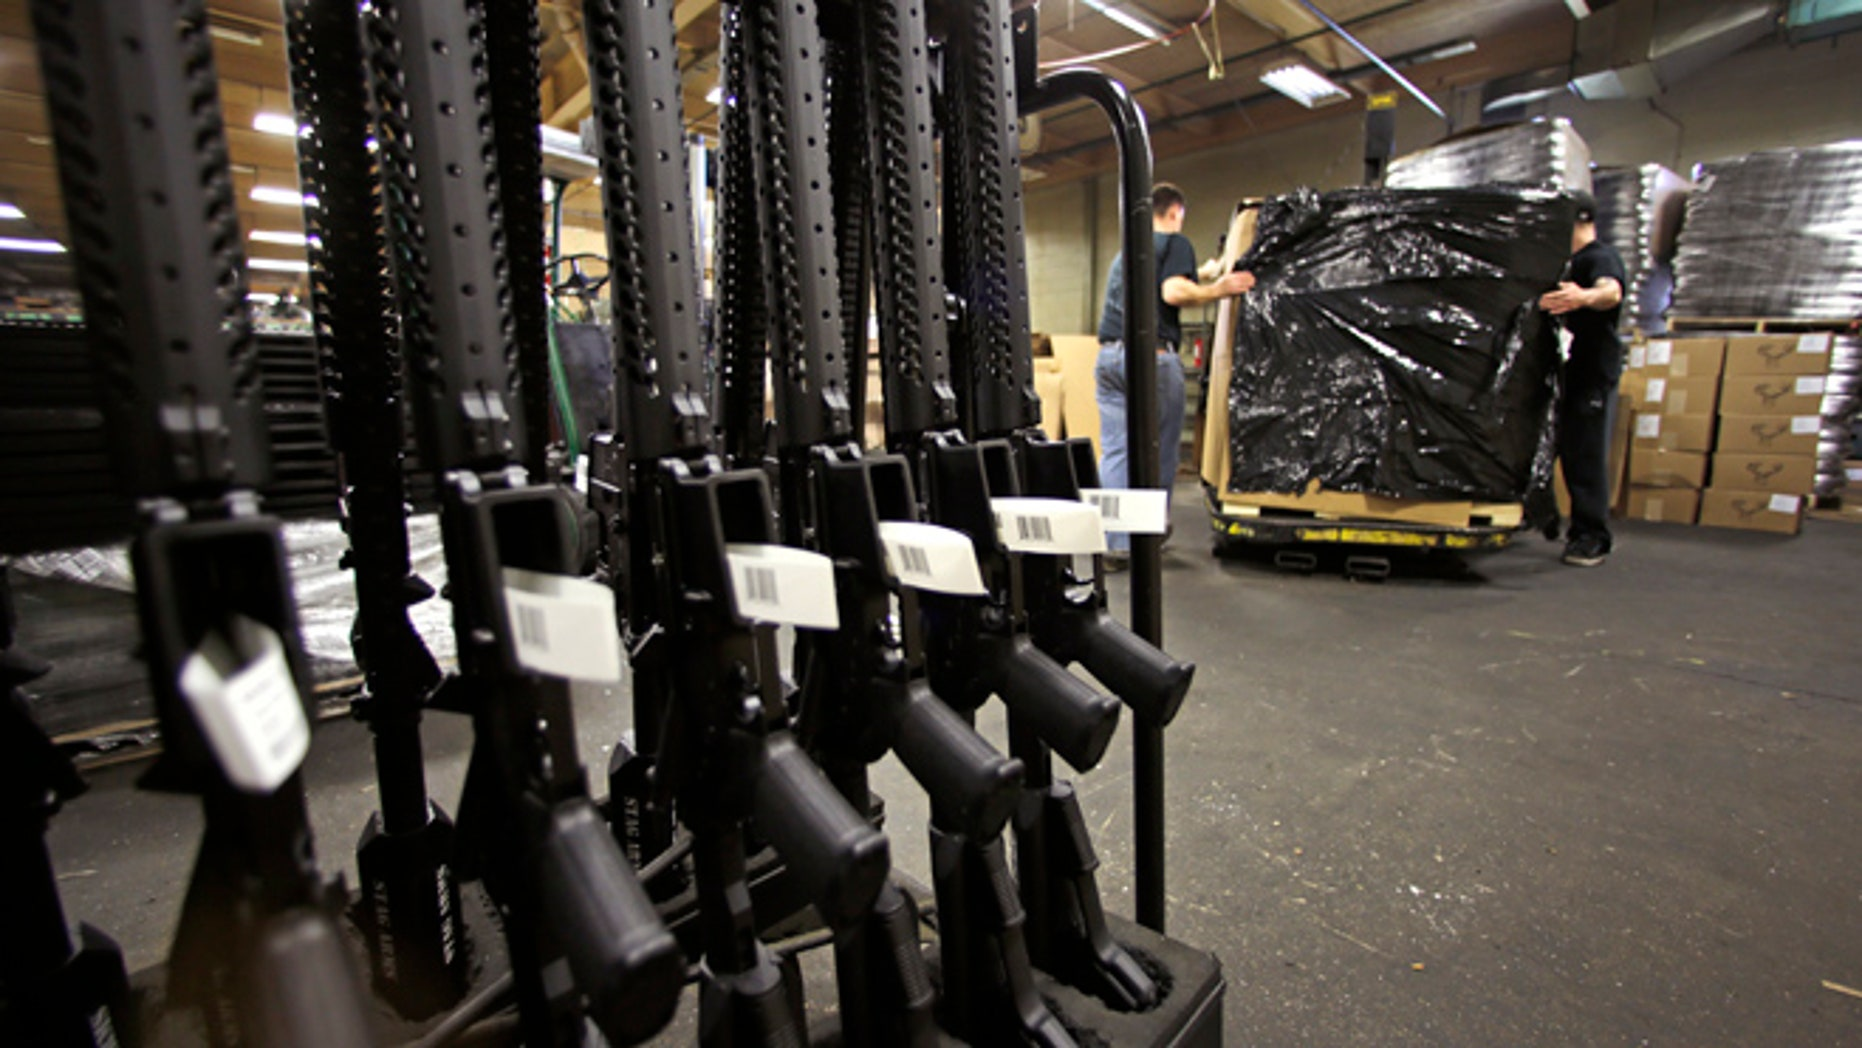 A rack of AR-15 rifles stand to be individually packaged as workers move a pallet of rifles for shipment at the Stag Arms company in New Britain, Conn., Wednesday, April 10, 2013.